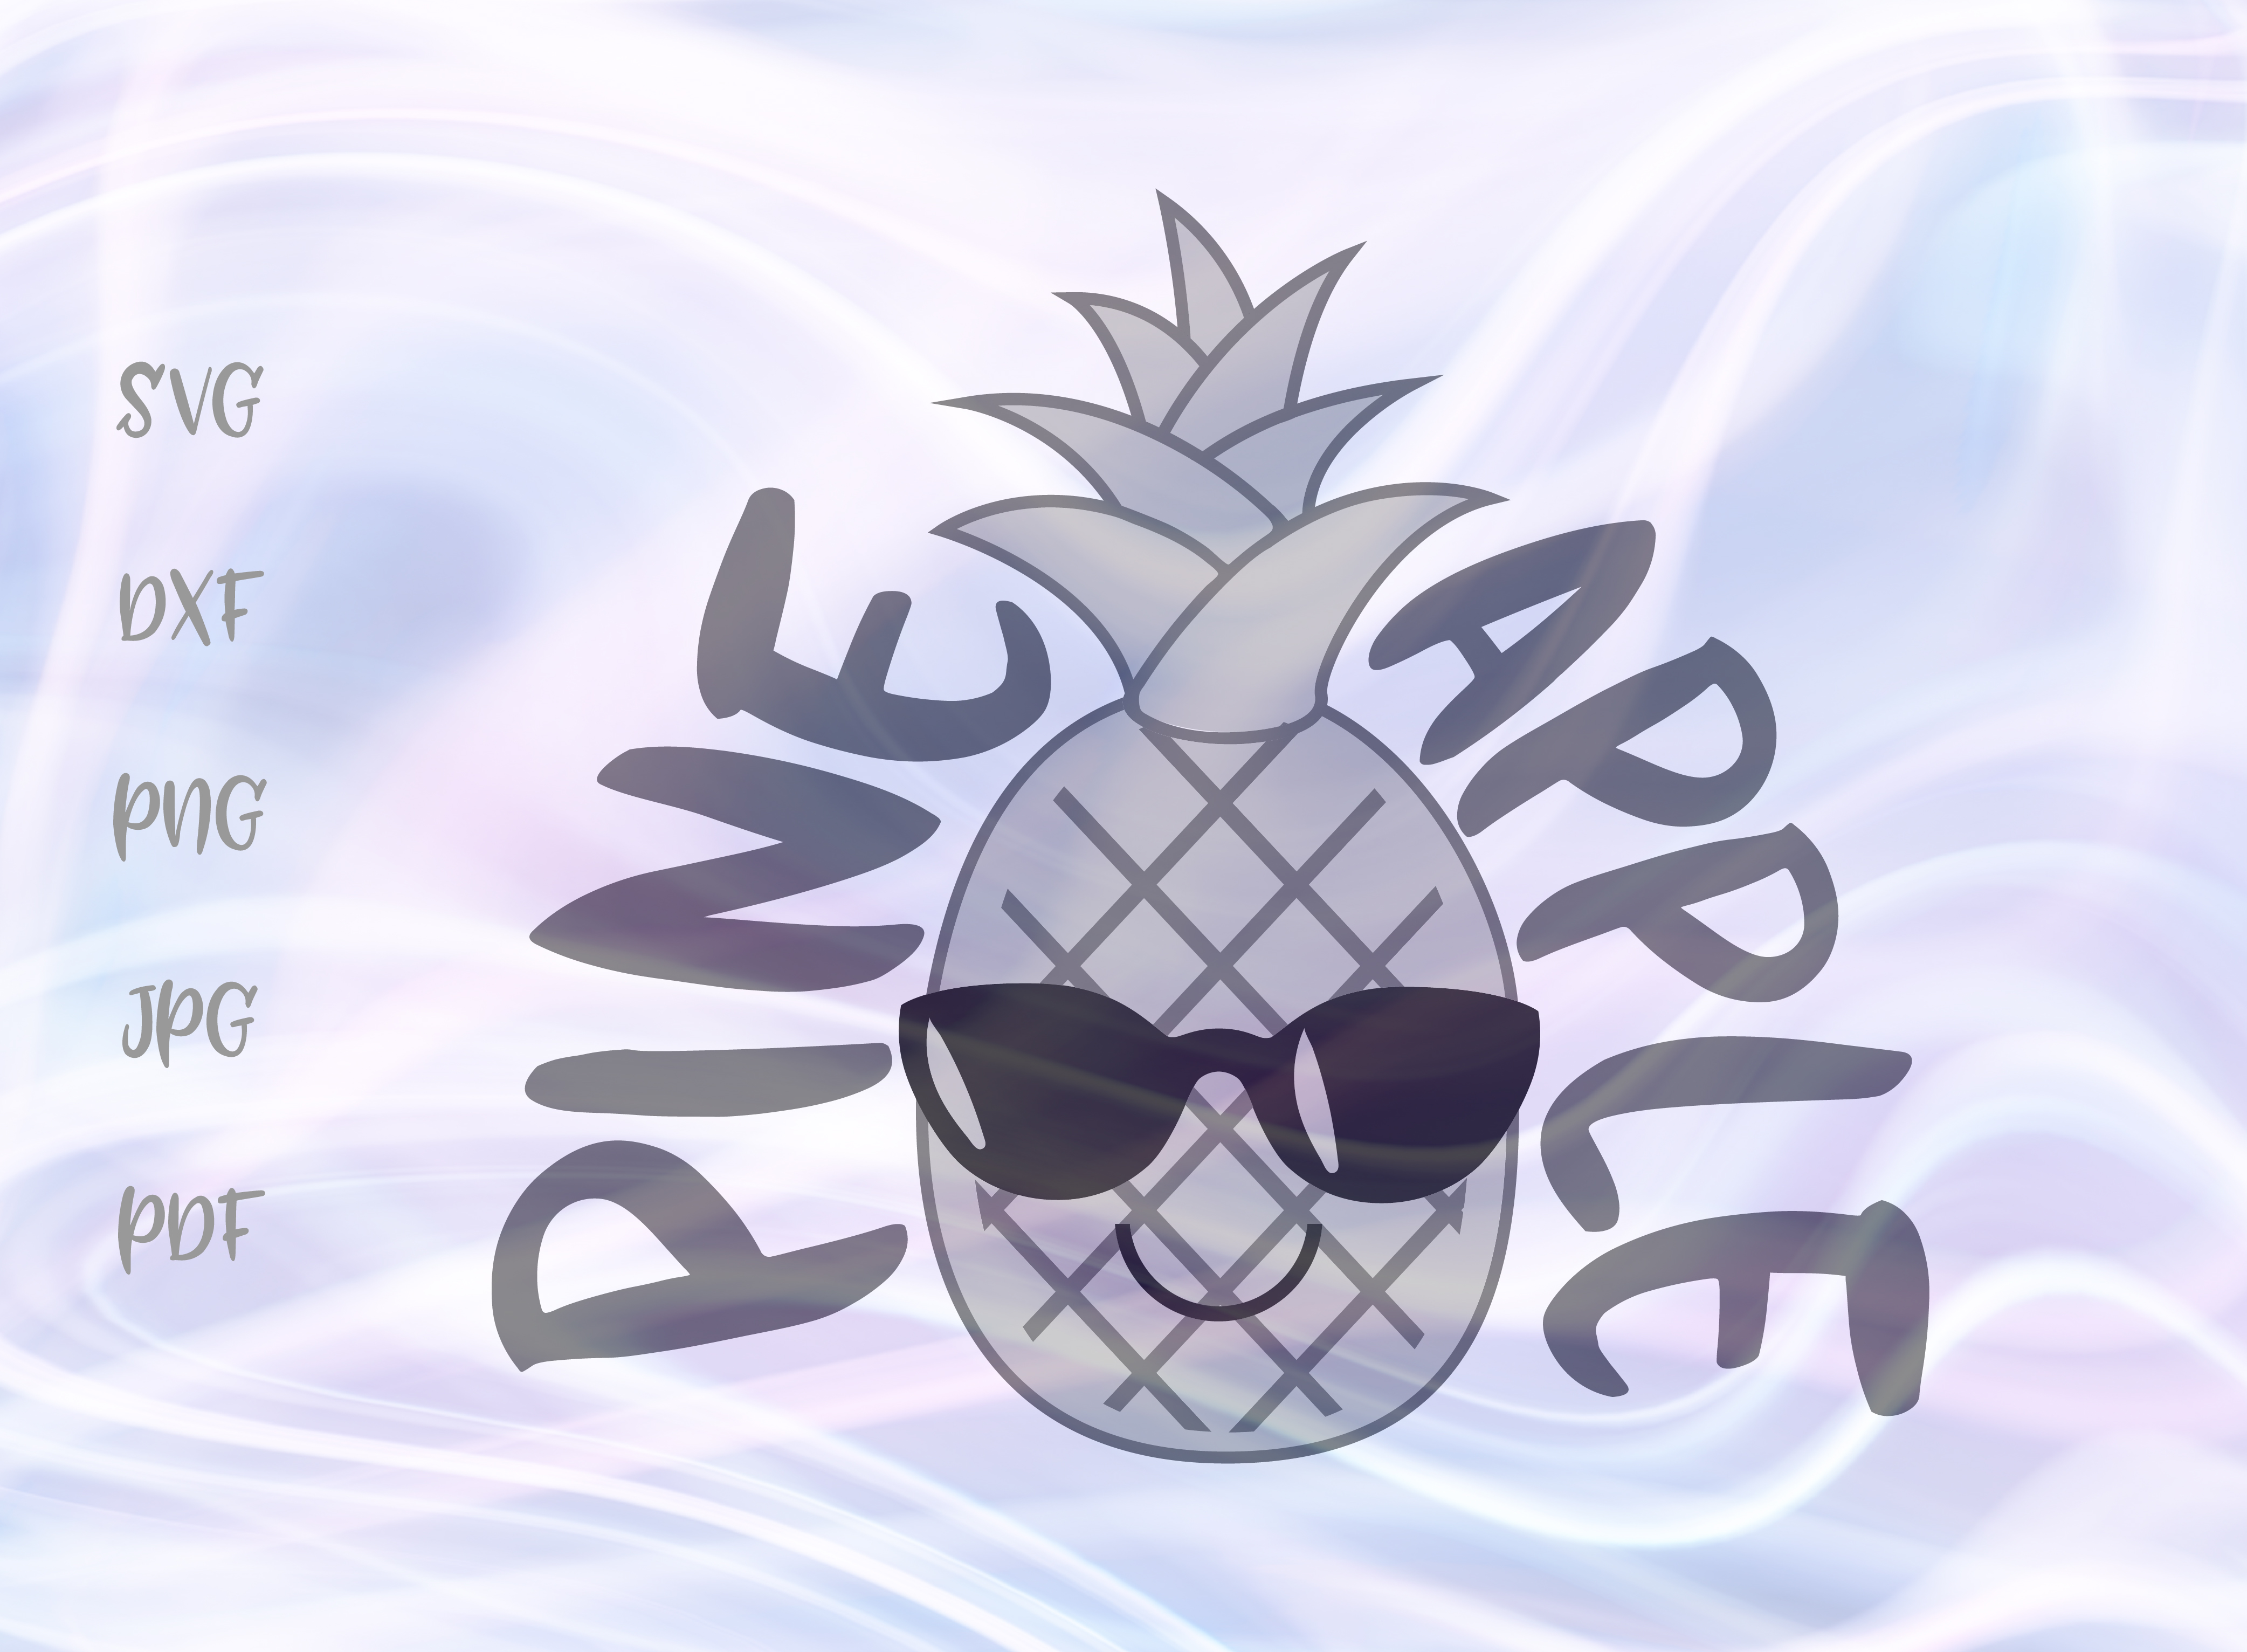 Download Free Pineapple Graphic By Digitals By Hanna Creative Fabrica for Cricut Explore, Silhouette and other cutting machines.